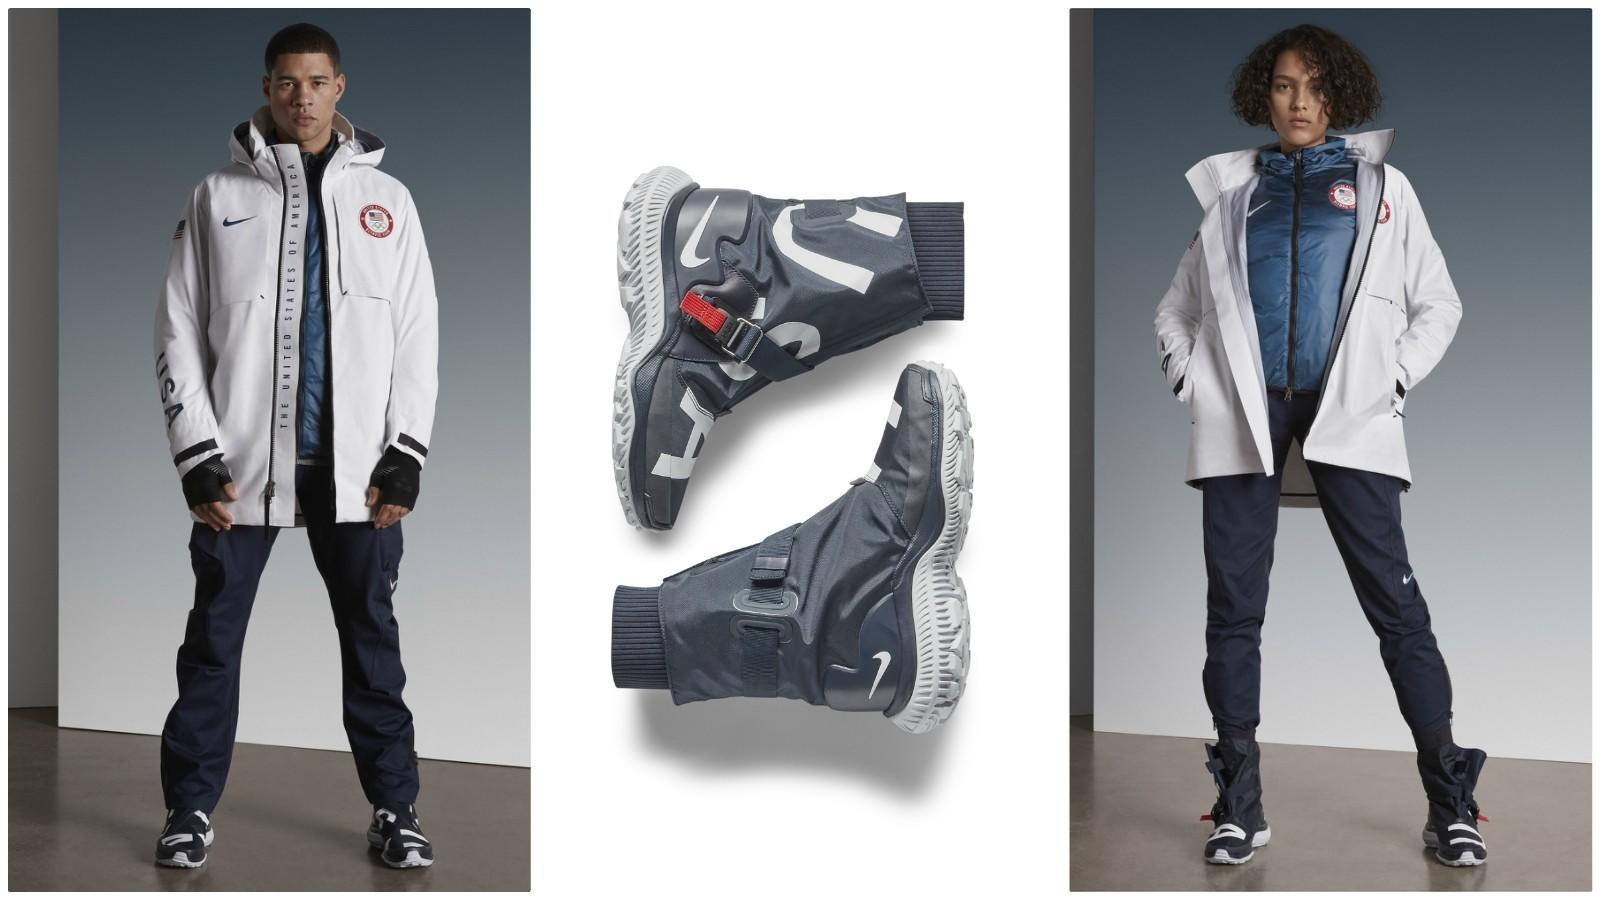 Bombers away! The classic jacket style is part of Nikeu0026#39;s medal-stand collection at the Winter ...